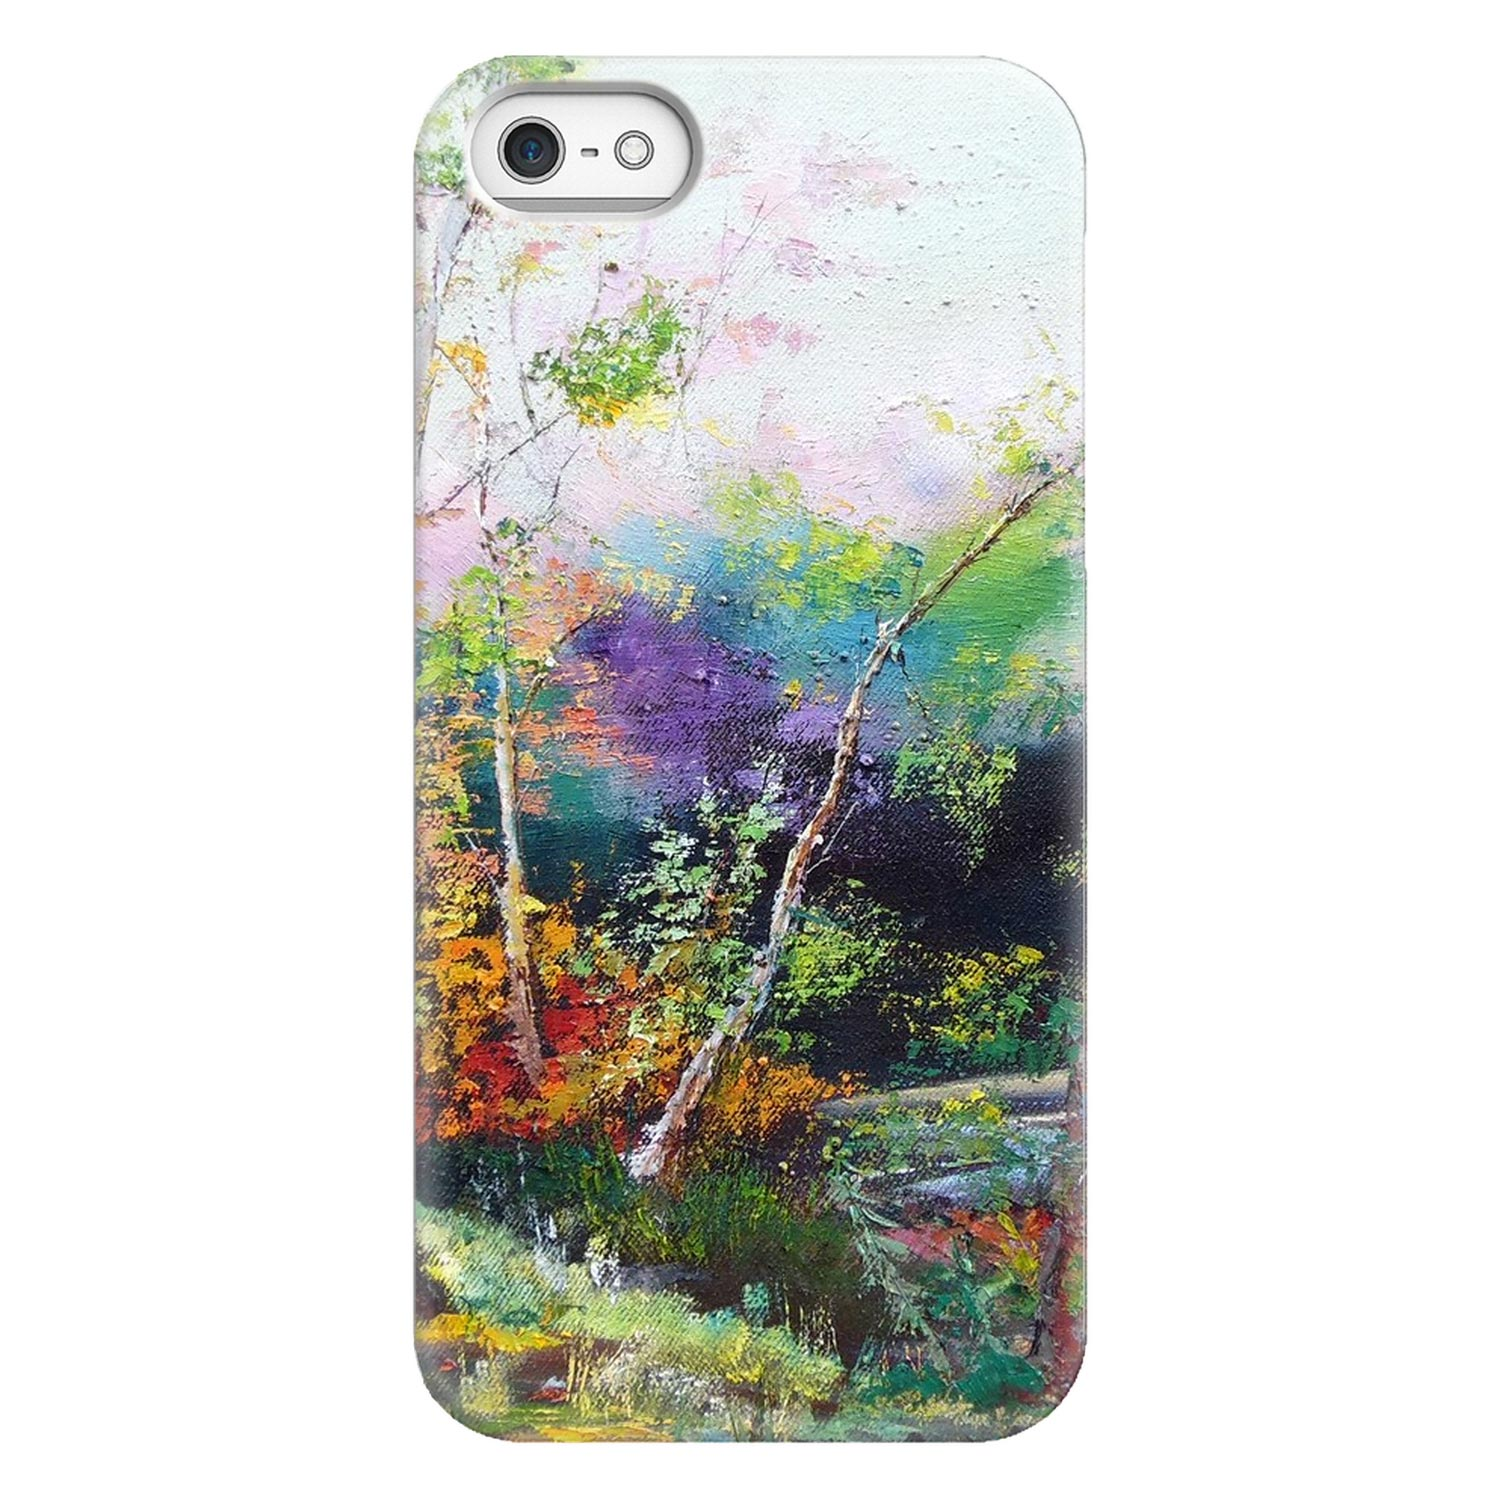 Artsy iPhone Case – Surreal Forest I